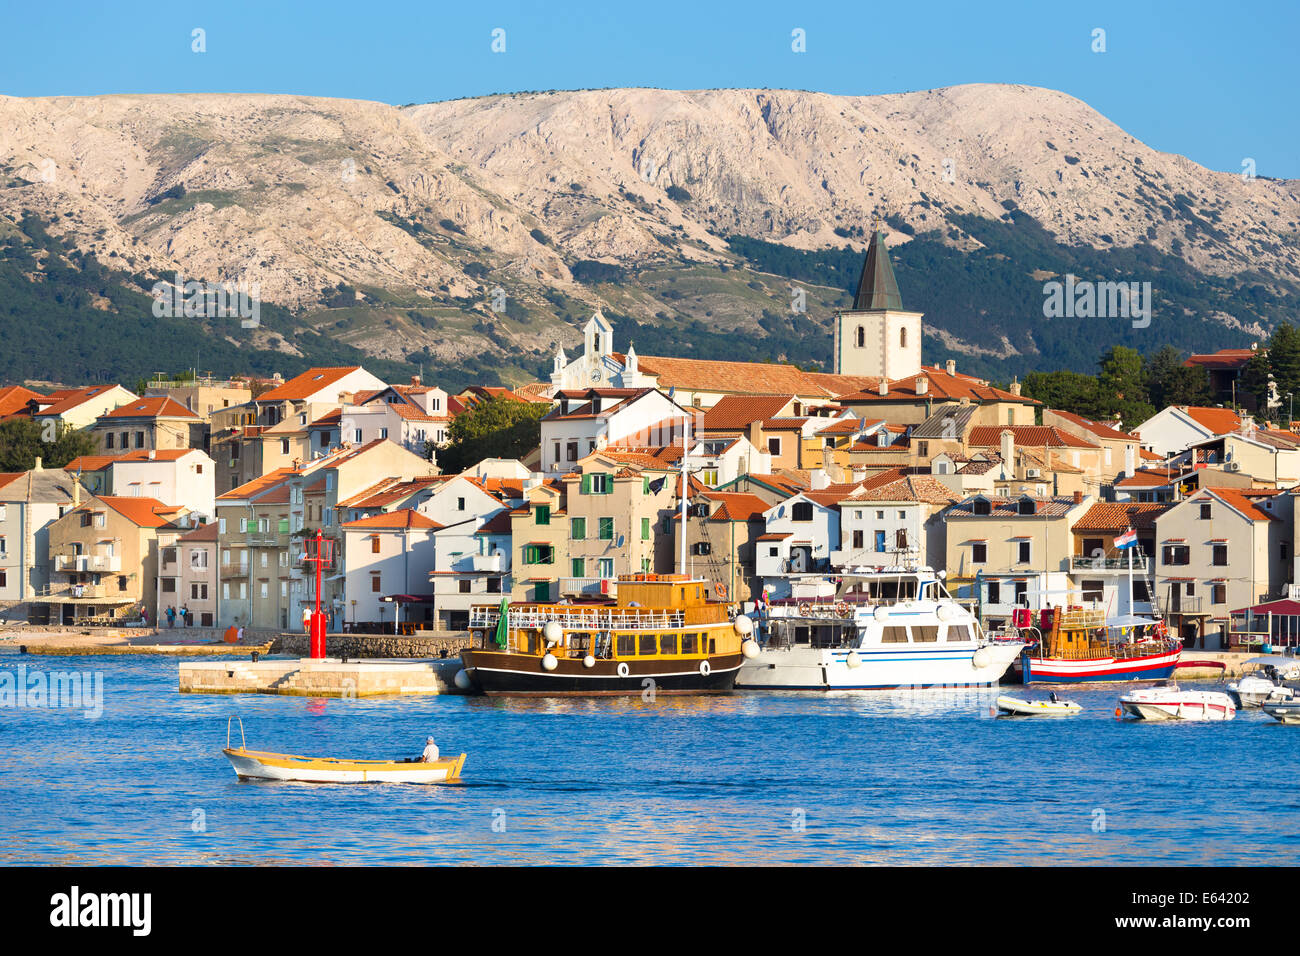 Baska, Krk, Croatia, Europe. - Stock Image